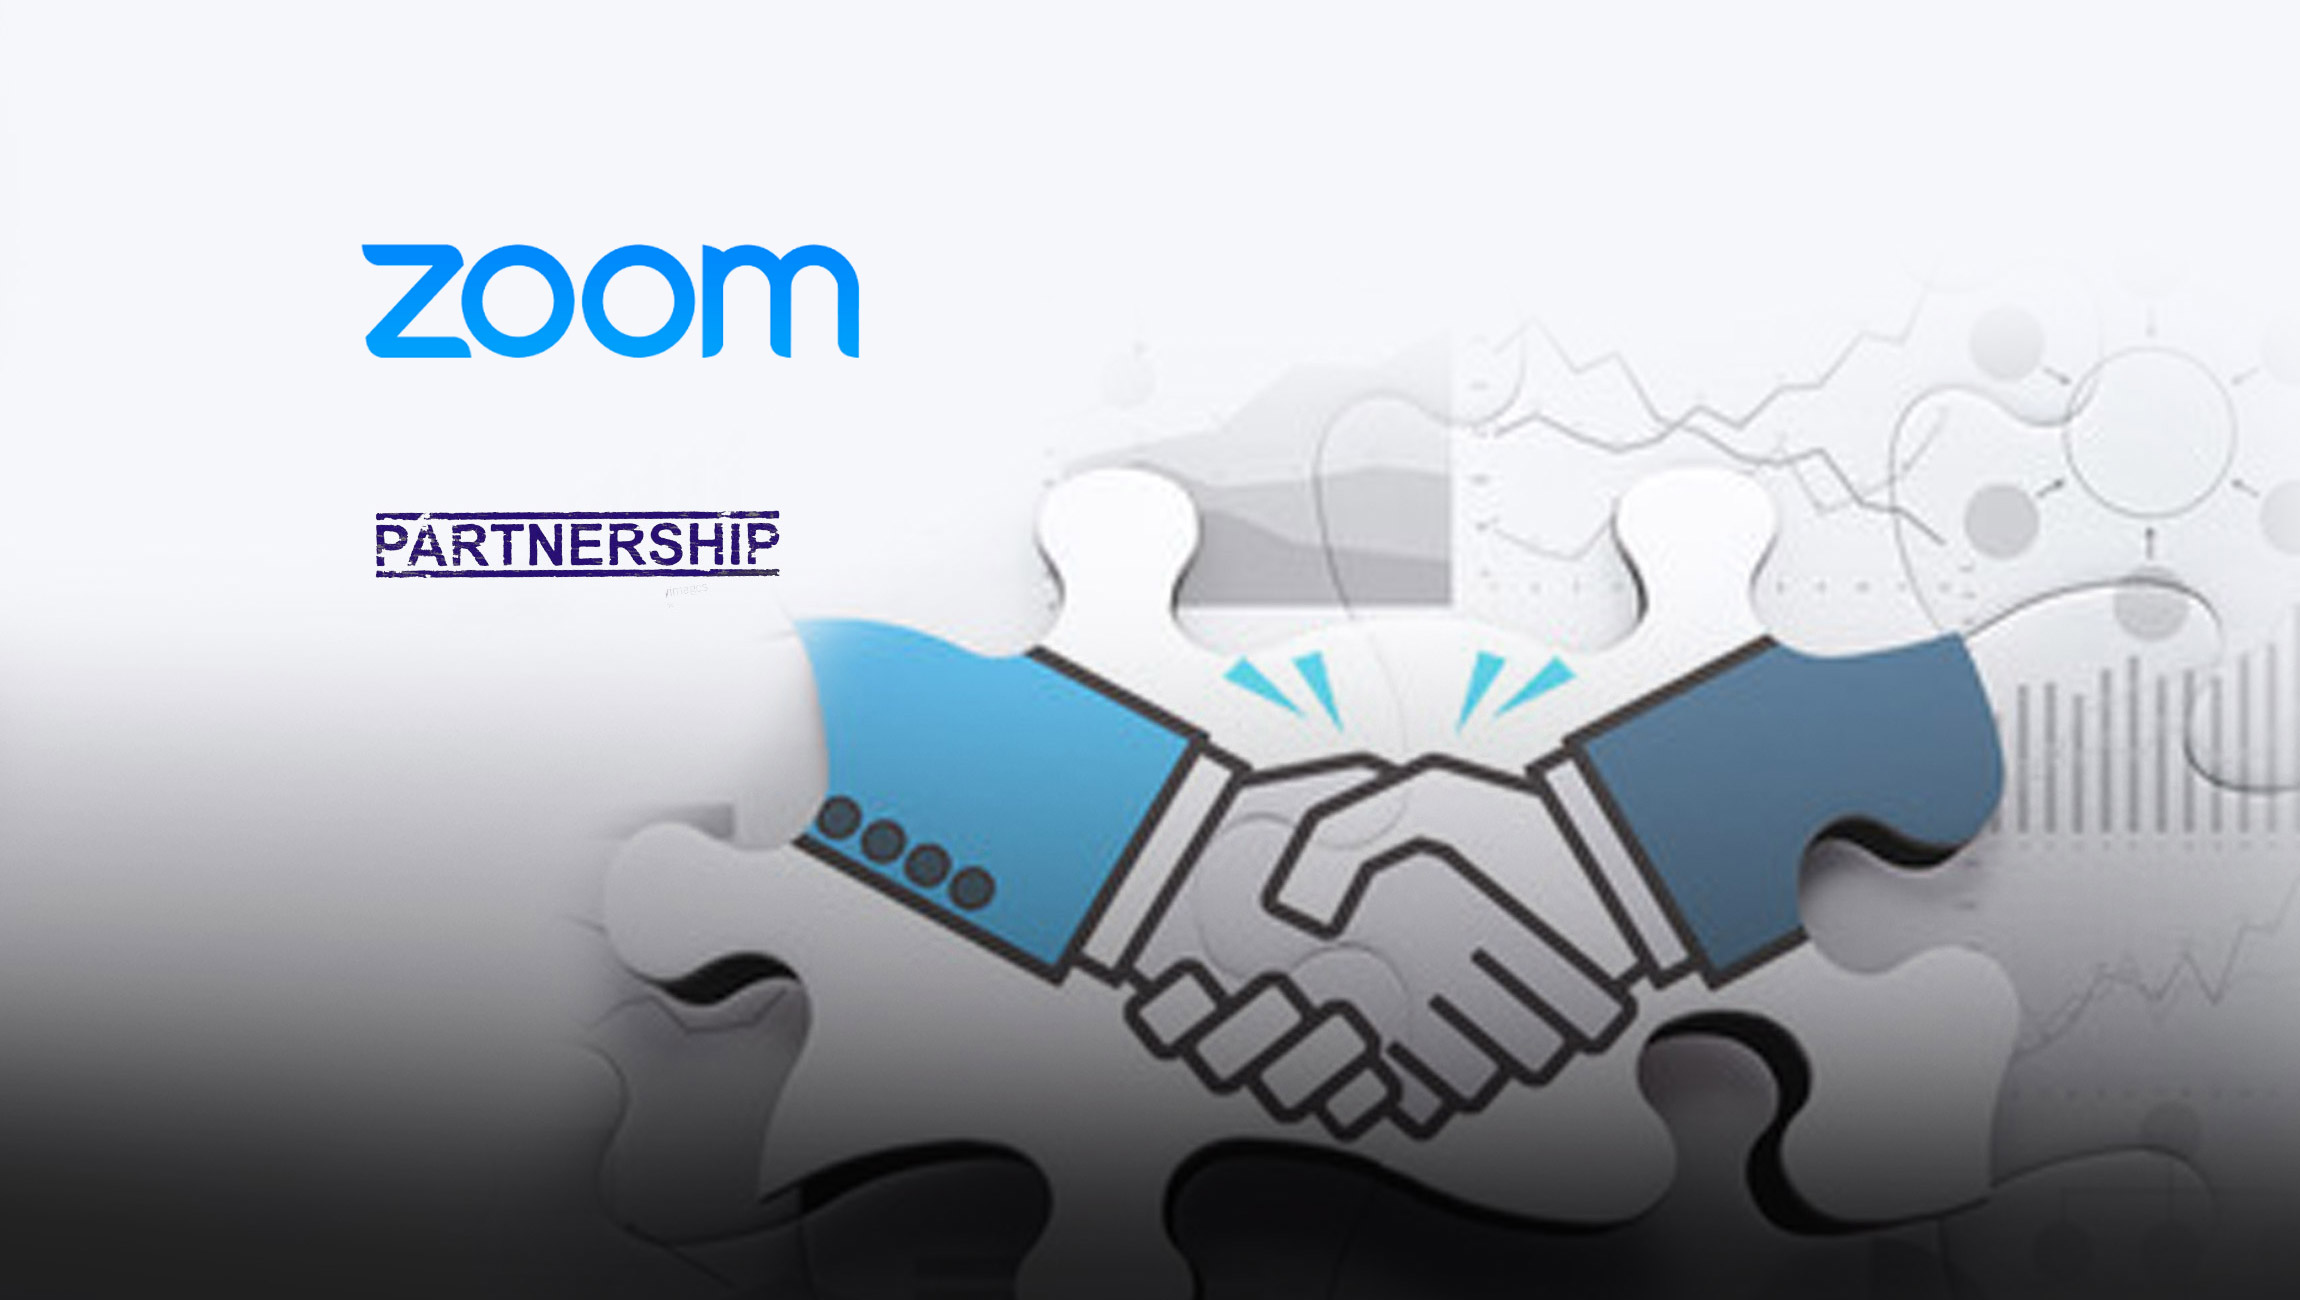 Zoom Enhances Partner Program With Accelerated Growth